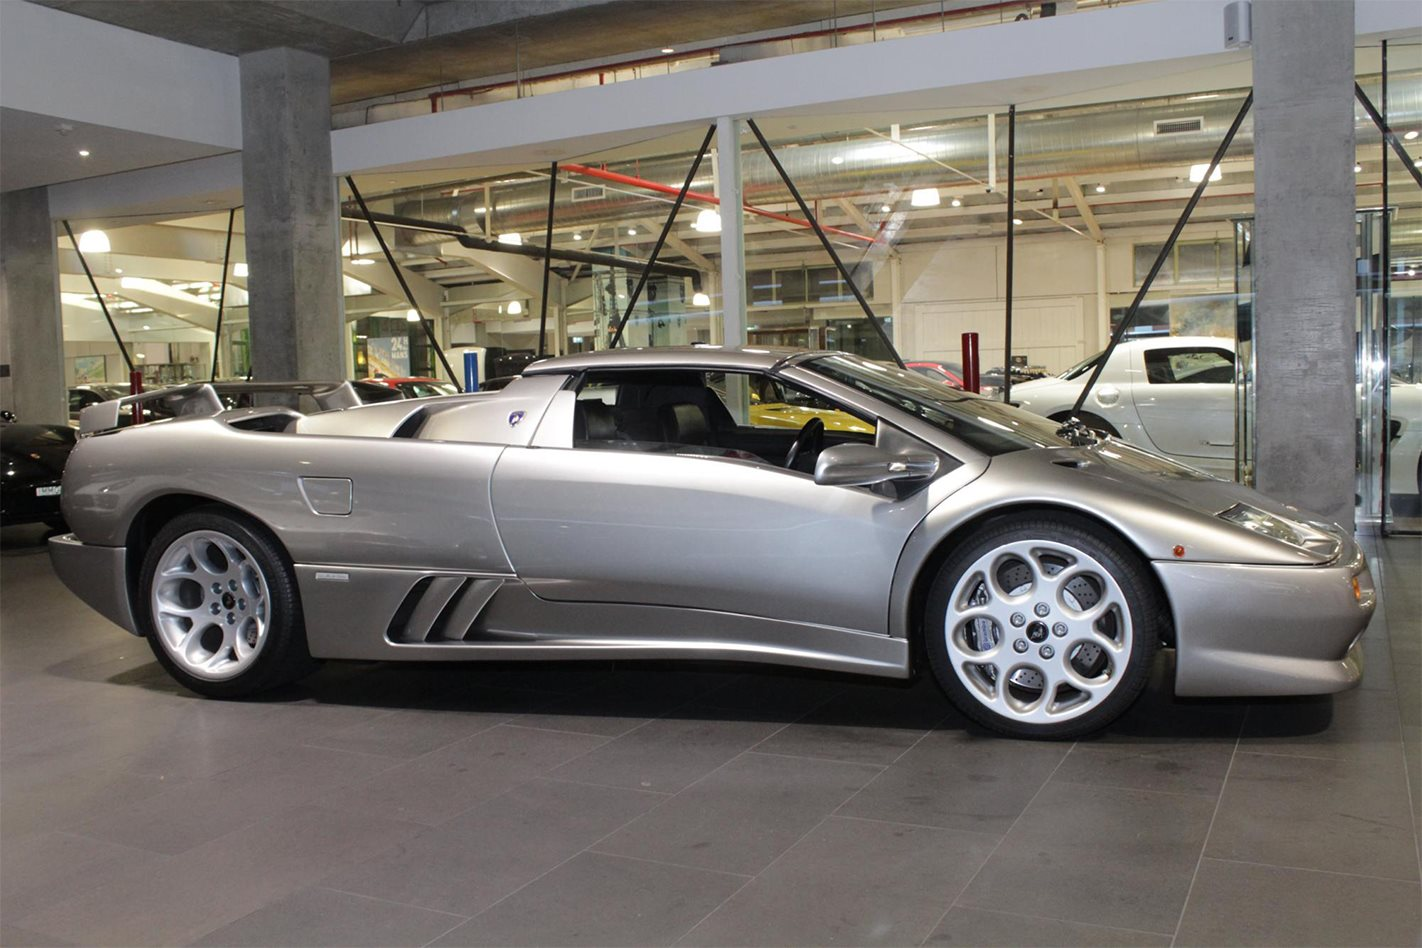 Super Rare Lamborghini Diablo For Sale In Australia